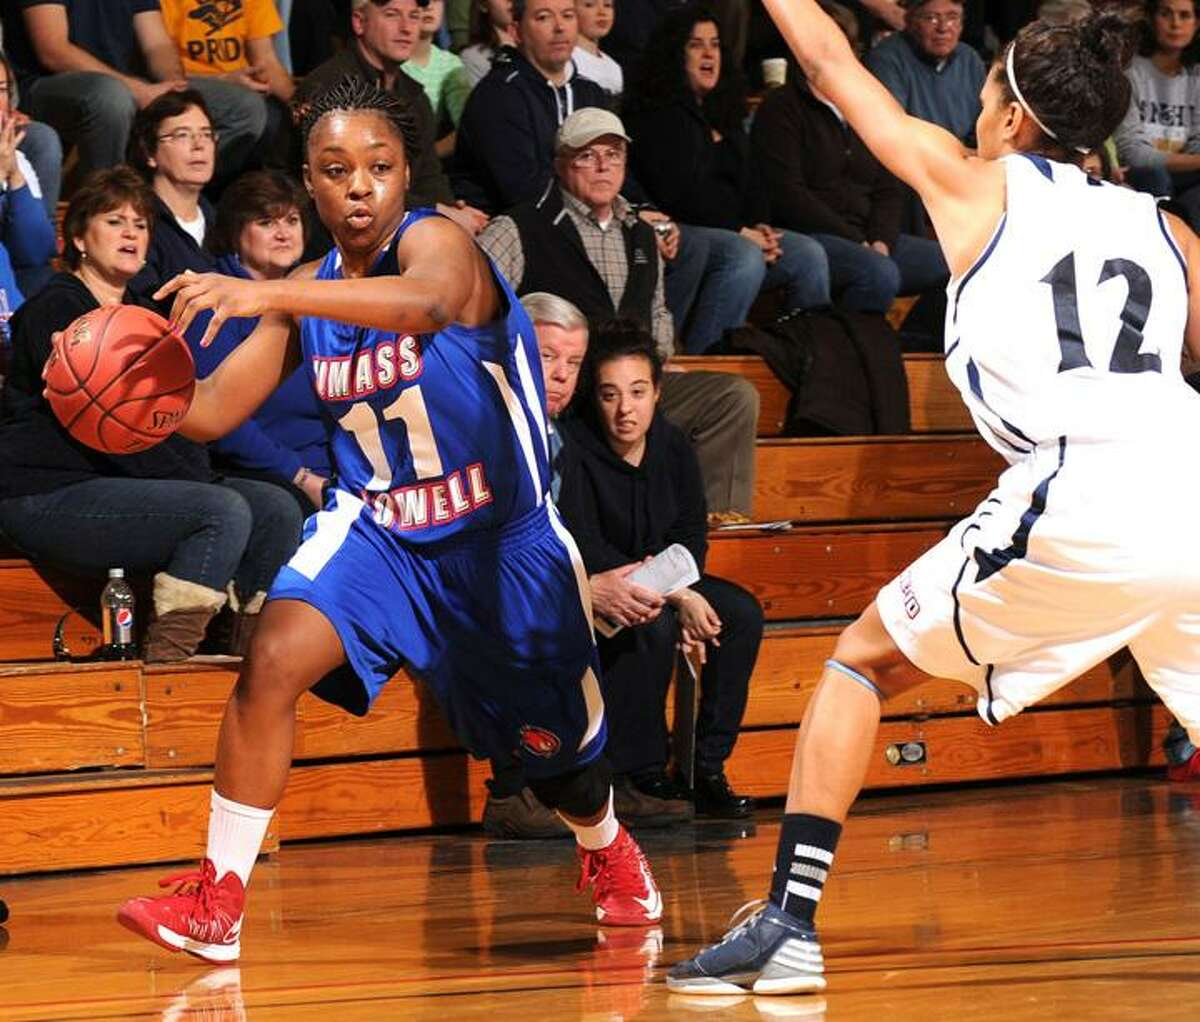 Gil Talbot/UMass Lowell Athletics Middletown's Bianca Simmons, a 2009 Mercy graduate, is currently leading Division II in scoring at 26.4 points per game.